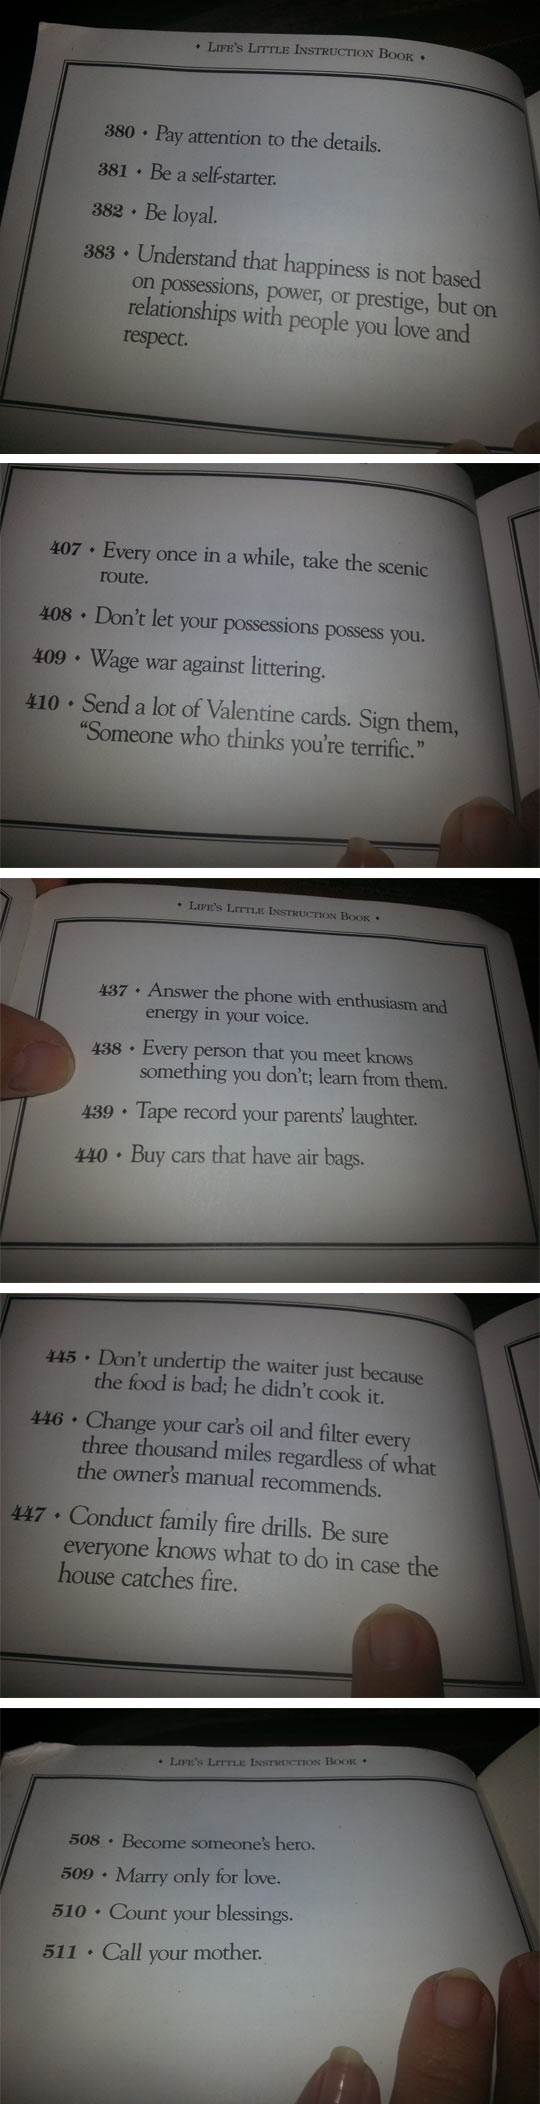 funny-Life-Instruction-Book-advice-details